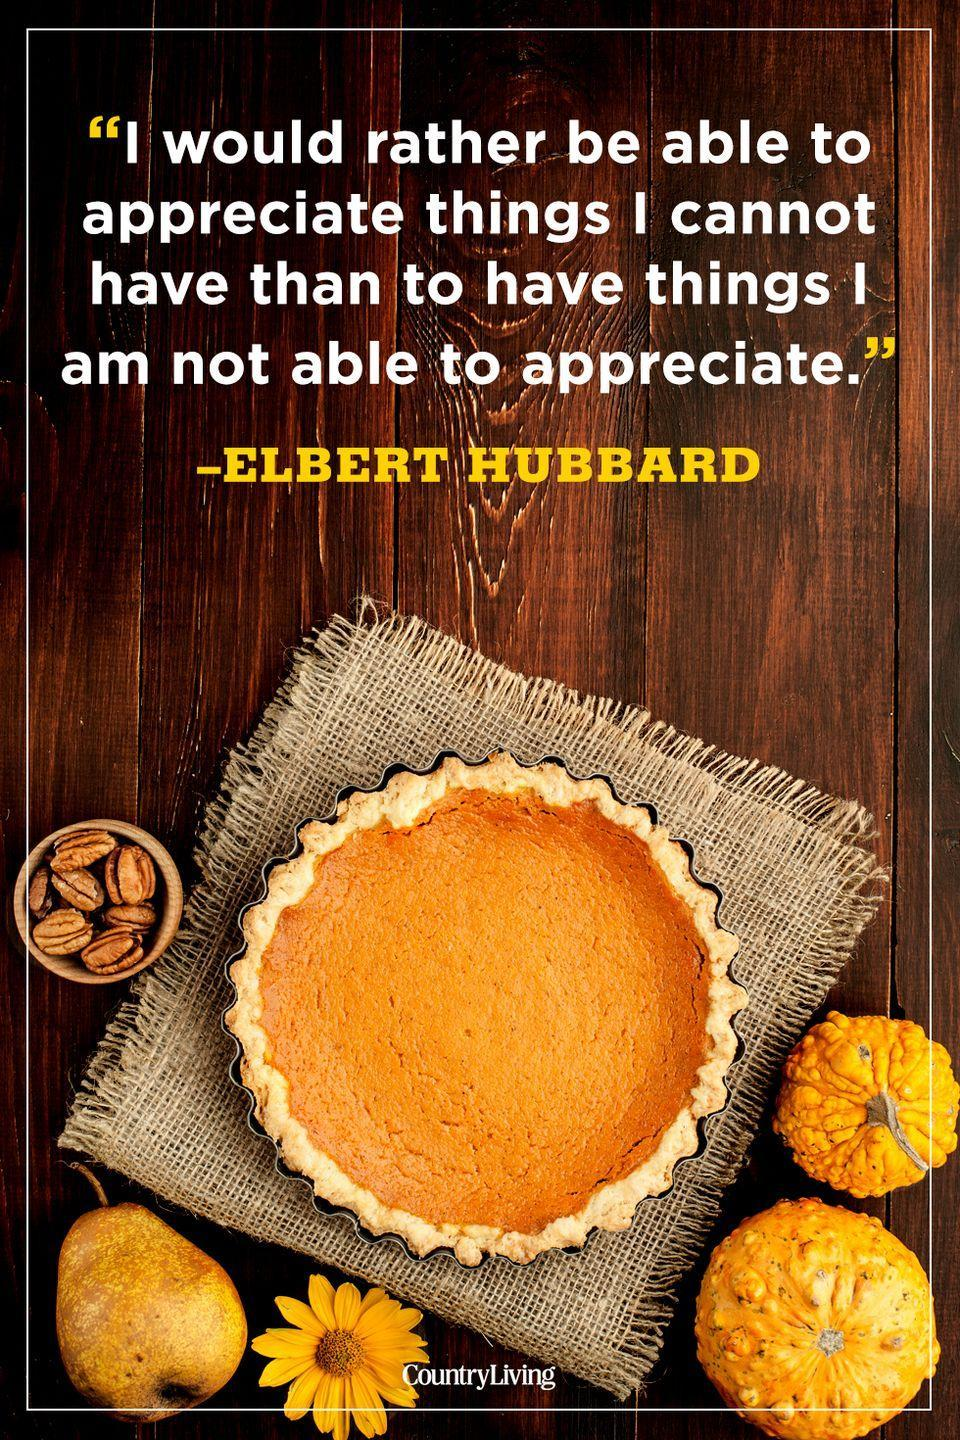 """<p>""""I would rather be able to appreciate things I cannot have than to have things I am not able to appreciate.""""</p><p><strong>RELATED:</strong> <a href=""""https://www.countryliving.com/food-drinks/g1395/best-thanksgiving-recipes/"""" rel=""""nofollow noopener"""" target=""""_blank"""" data-ylk=""""slk:Country Living's Best-Ever Thanksgiving Recipes"""" class=""""link rapid-noclick-resp"""">Country Living's Best-Ever Thanksgiving Recipes</a></p>"""